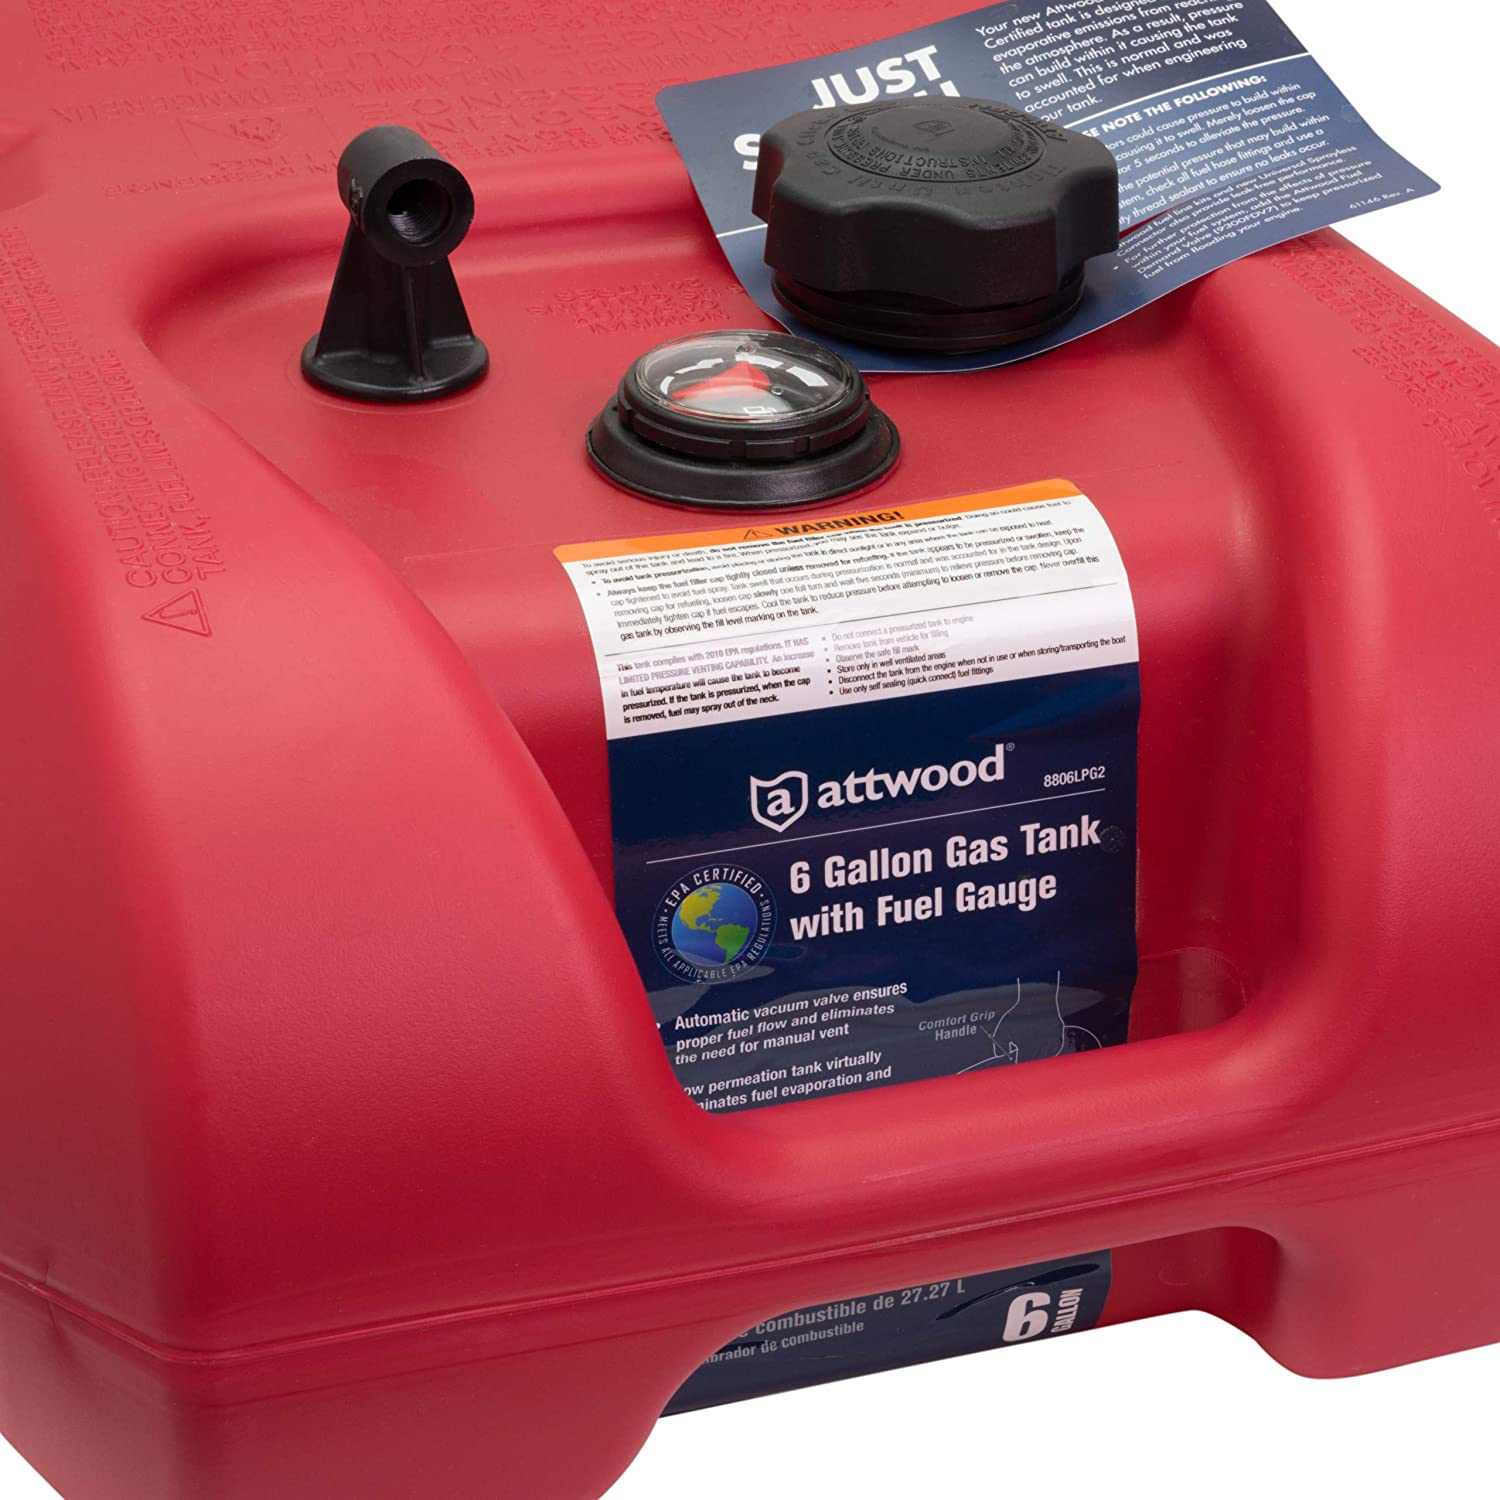 22/L Attwood 8806lpg2/Portable Fuel Tank with Level